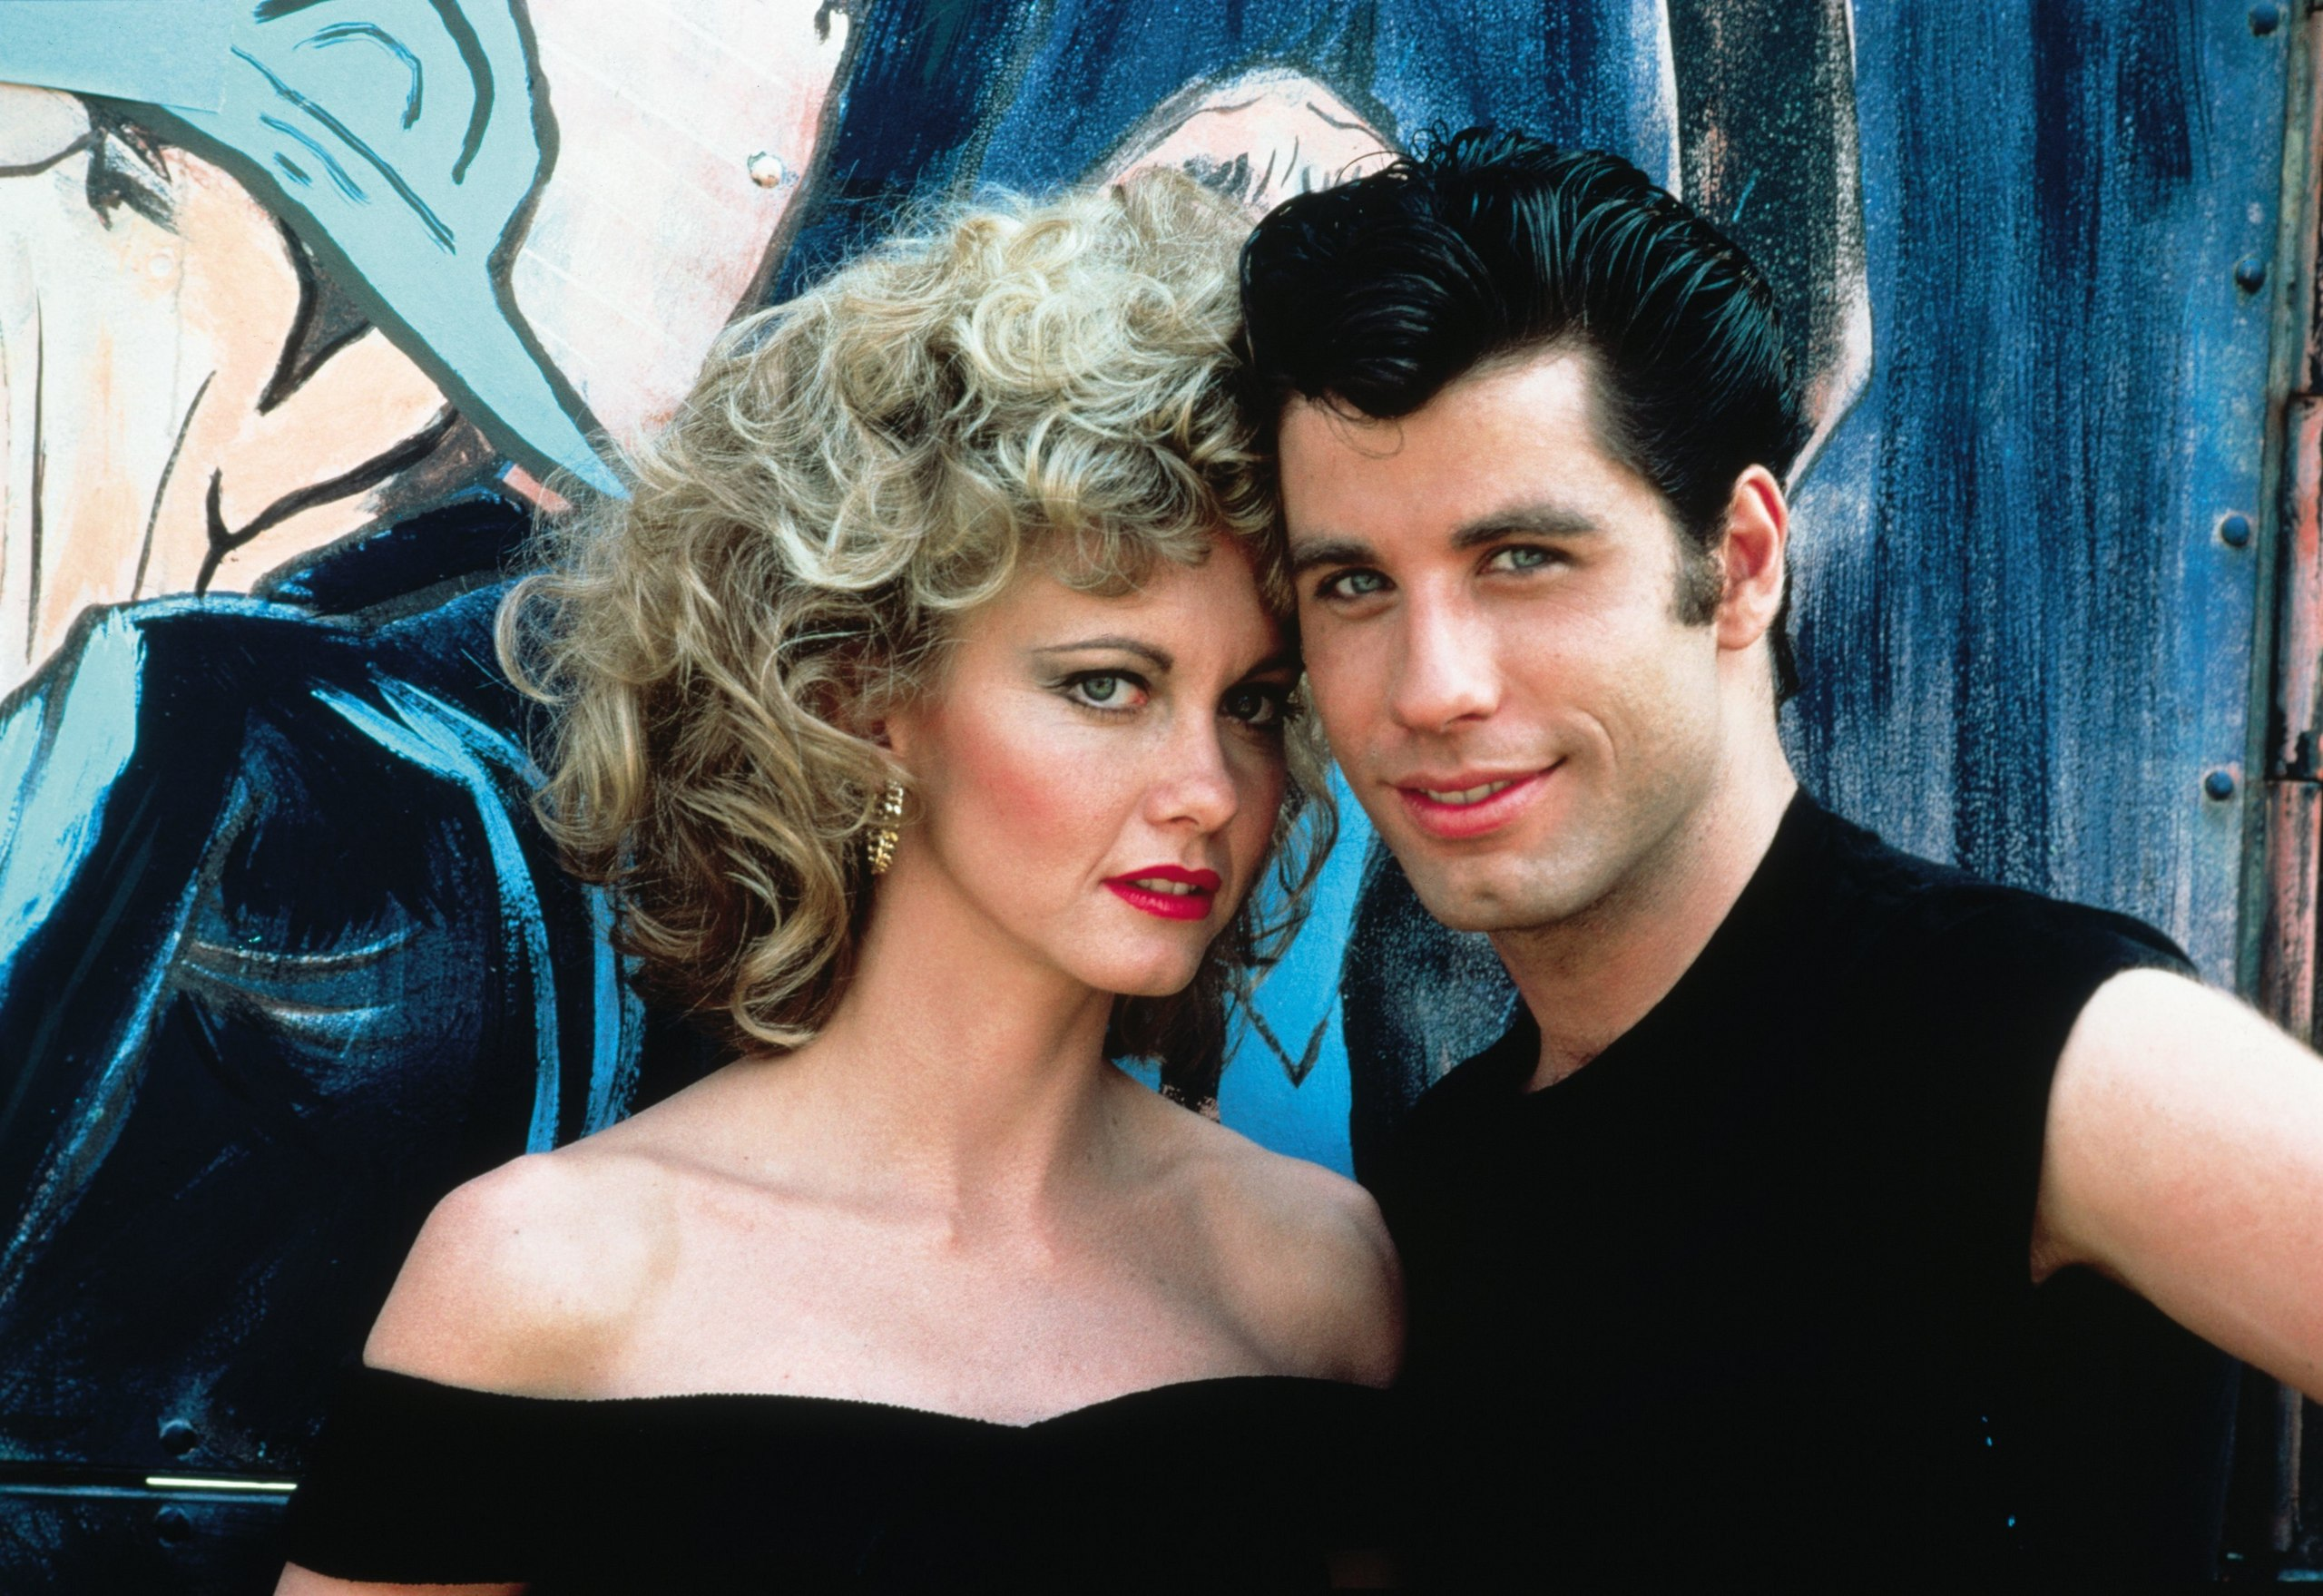 Grease The Movie Images HD Wallpaper And Background Photos